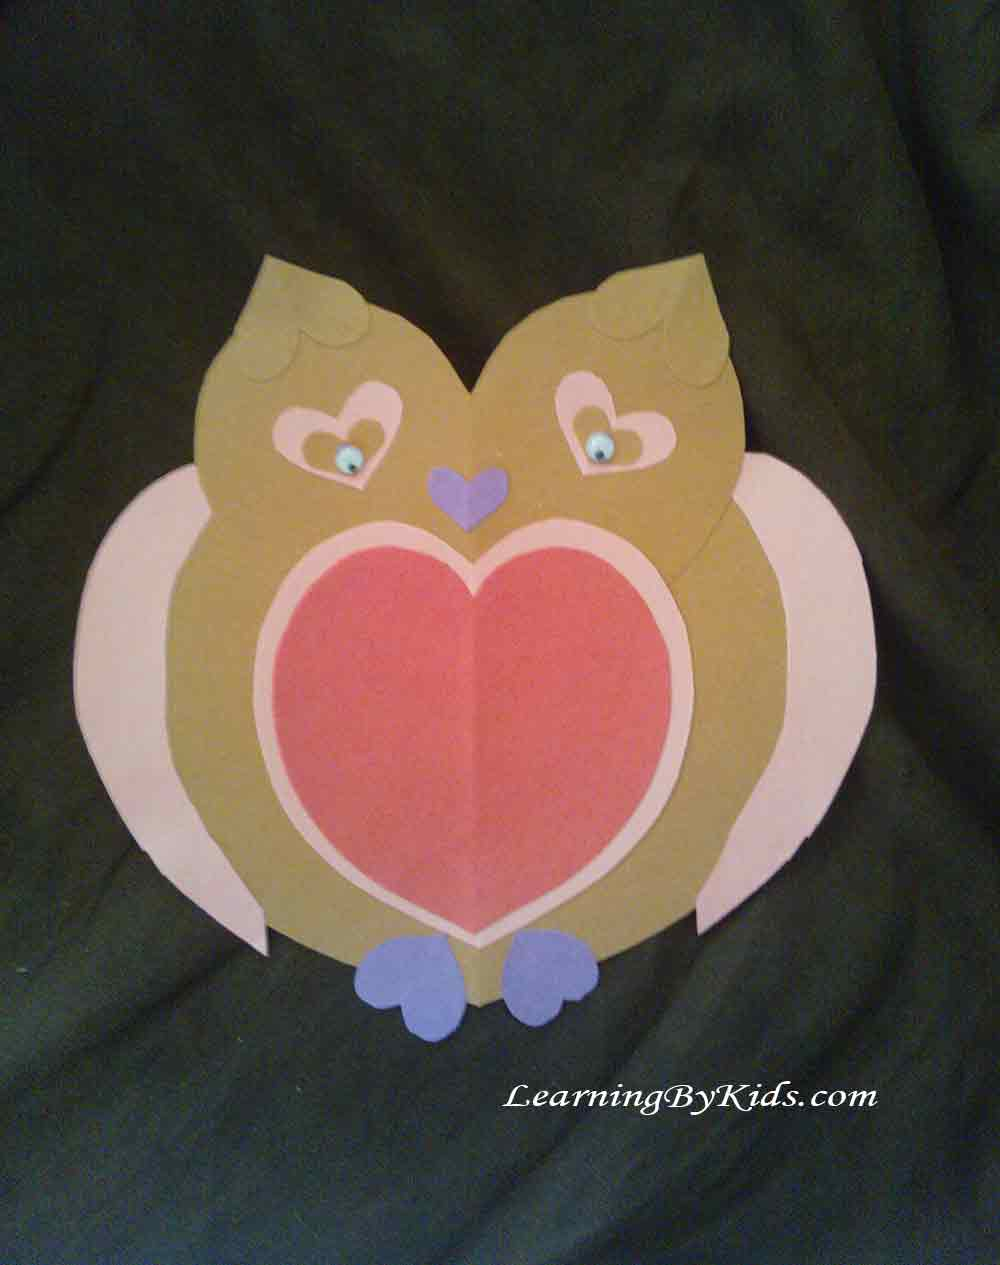 Heart-Shaped Owl I Learning By Kids I LearningByKids.com